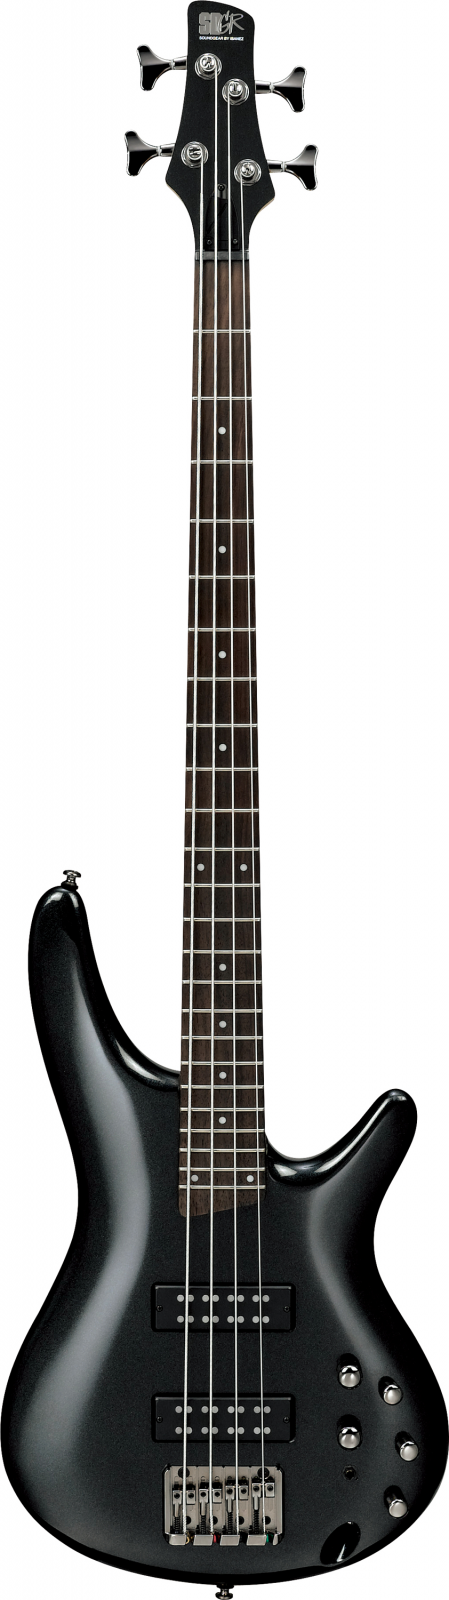 Ibanez SR300E IPT Electric Bass Guitar -Iron Pewter